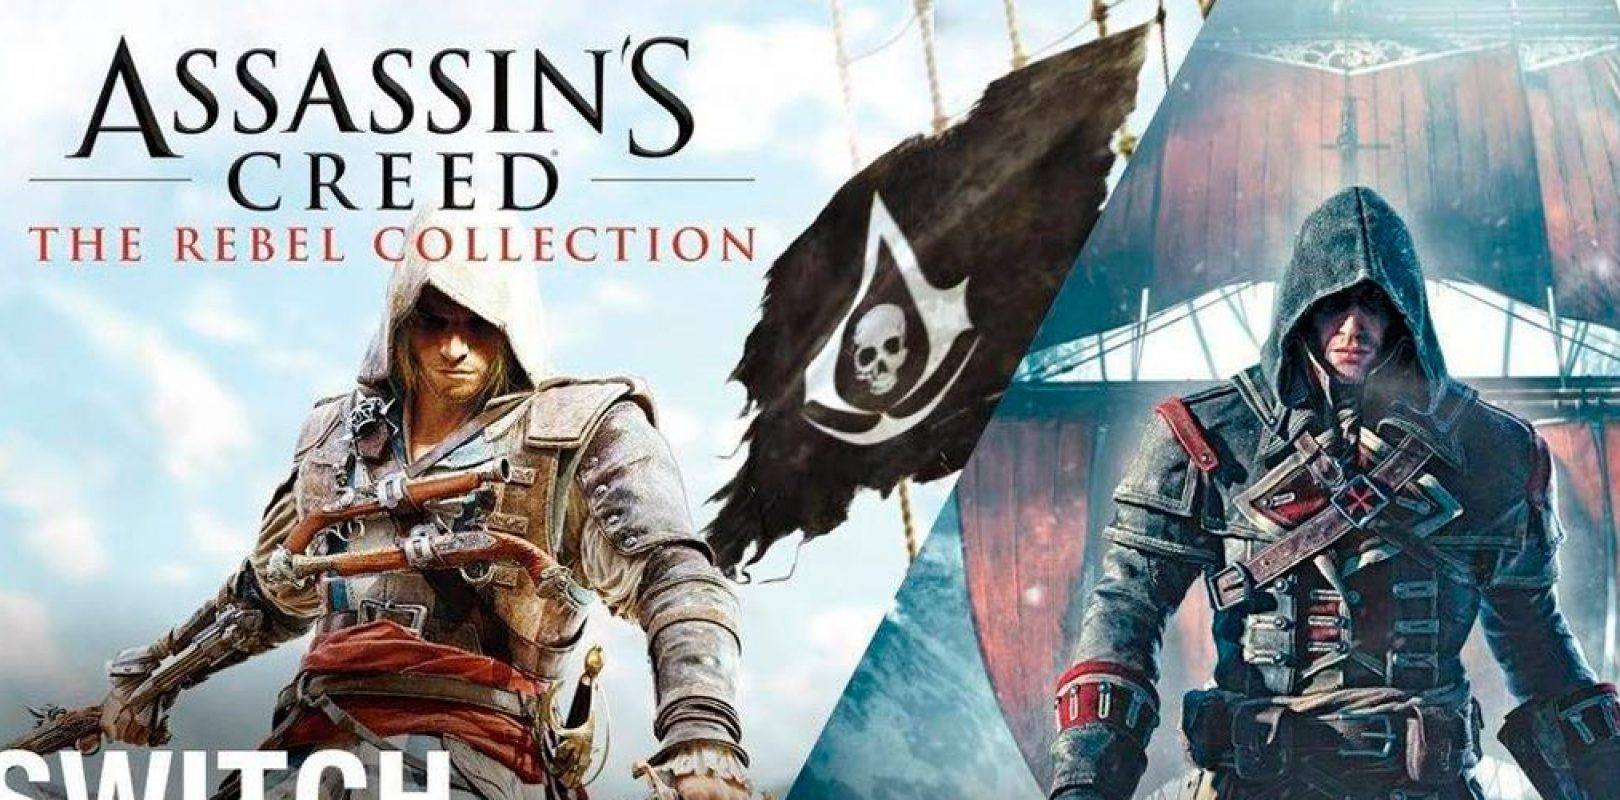 Ubisoft annuncia Assassin's Creed: The Rebel Collection